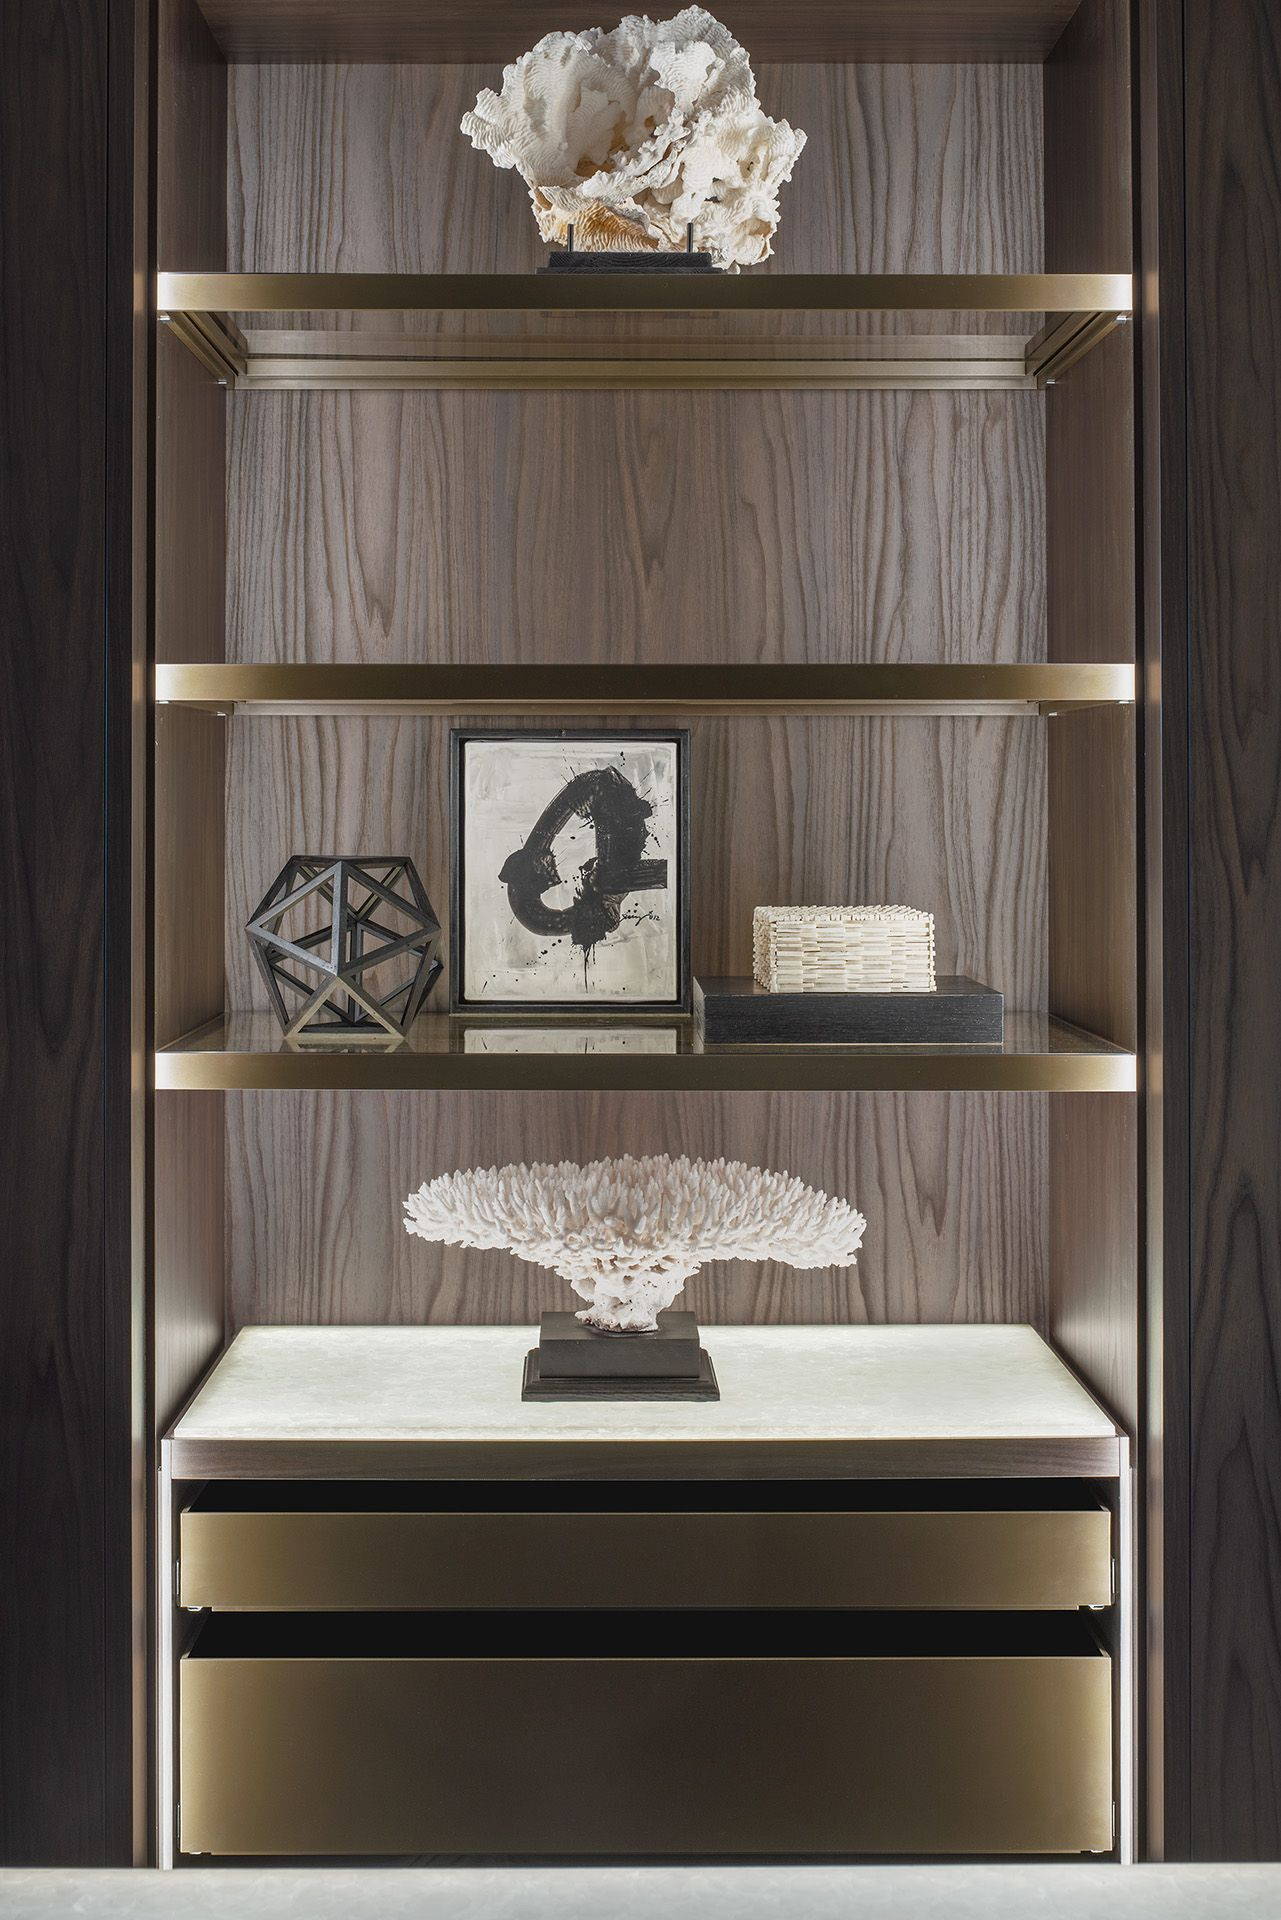 Regal Design Cabinet#cabinet | Cabinet Design, Display Cabinet Design, Shelving Design